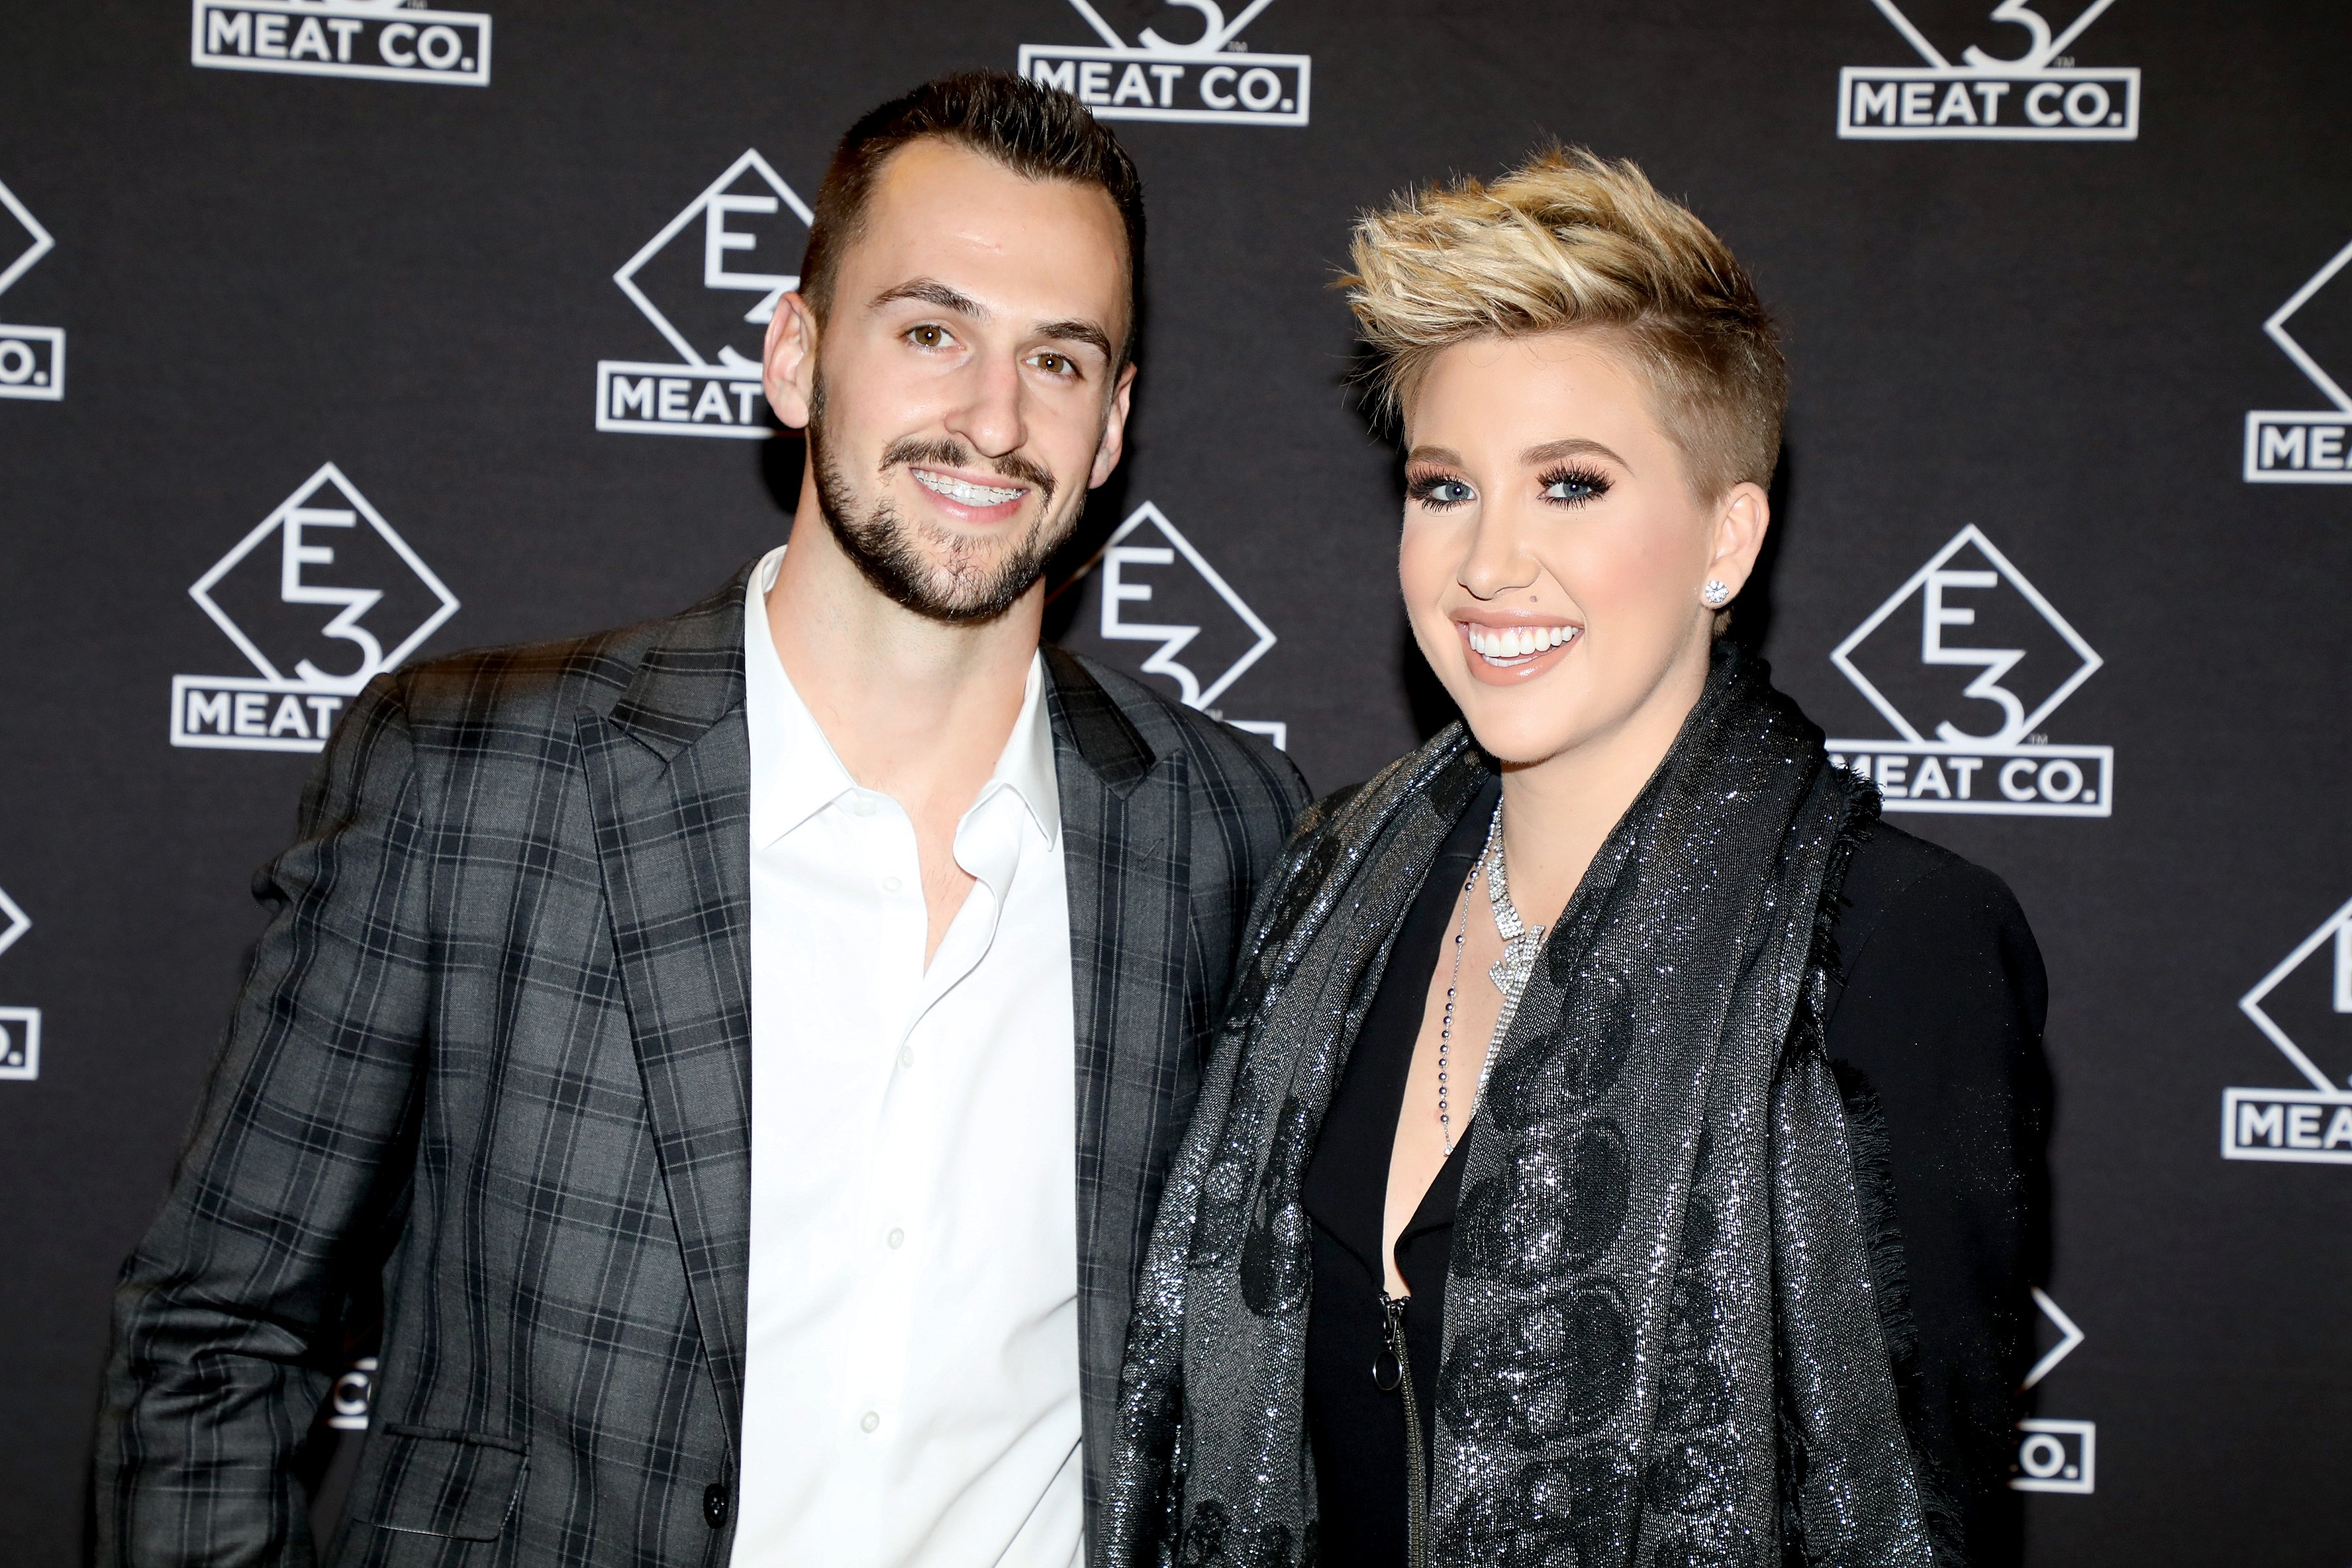 Nic Kerdiles and Savannah Chrisley attend the opening of E3 Chophouse Nashville on November 20, 2019, in Nashville, Tennessee. | Source: Getty Images.